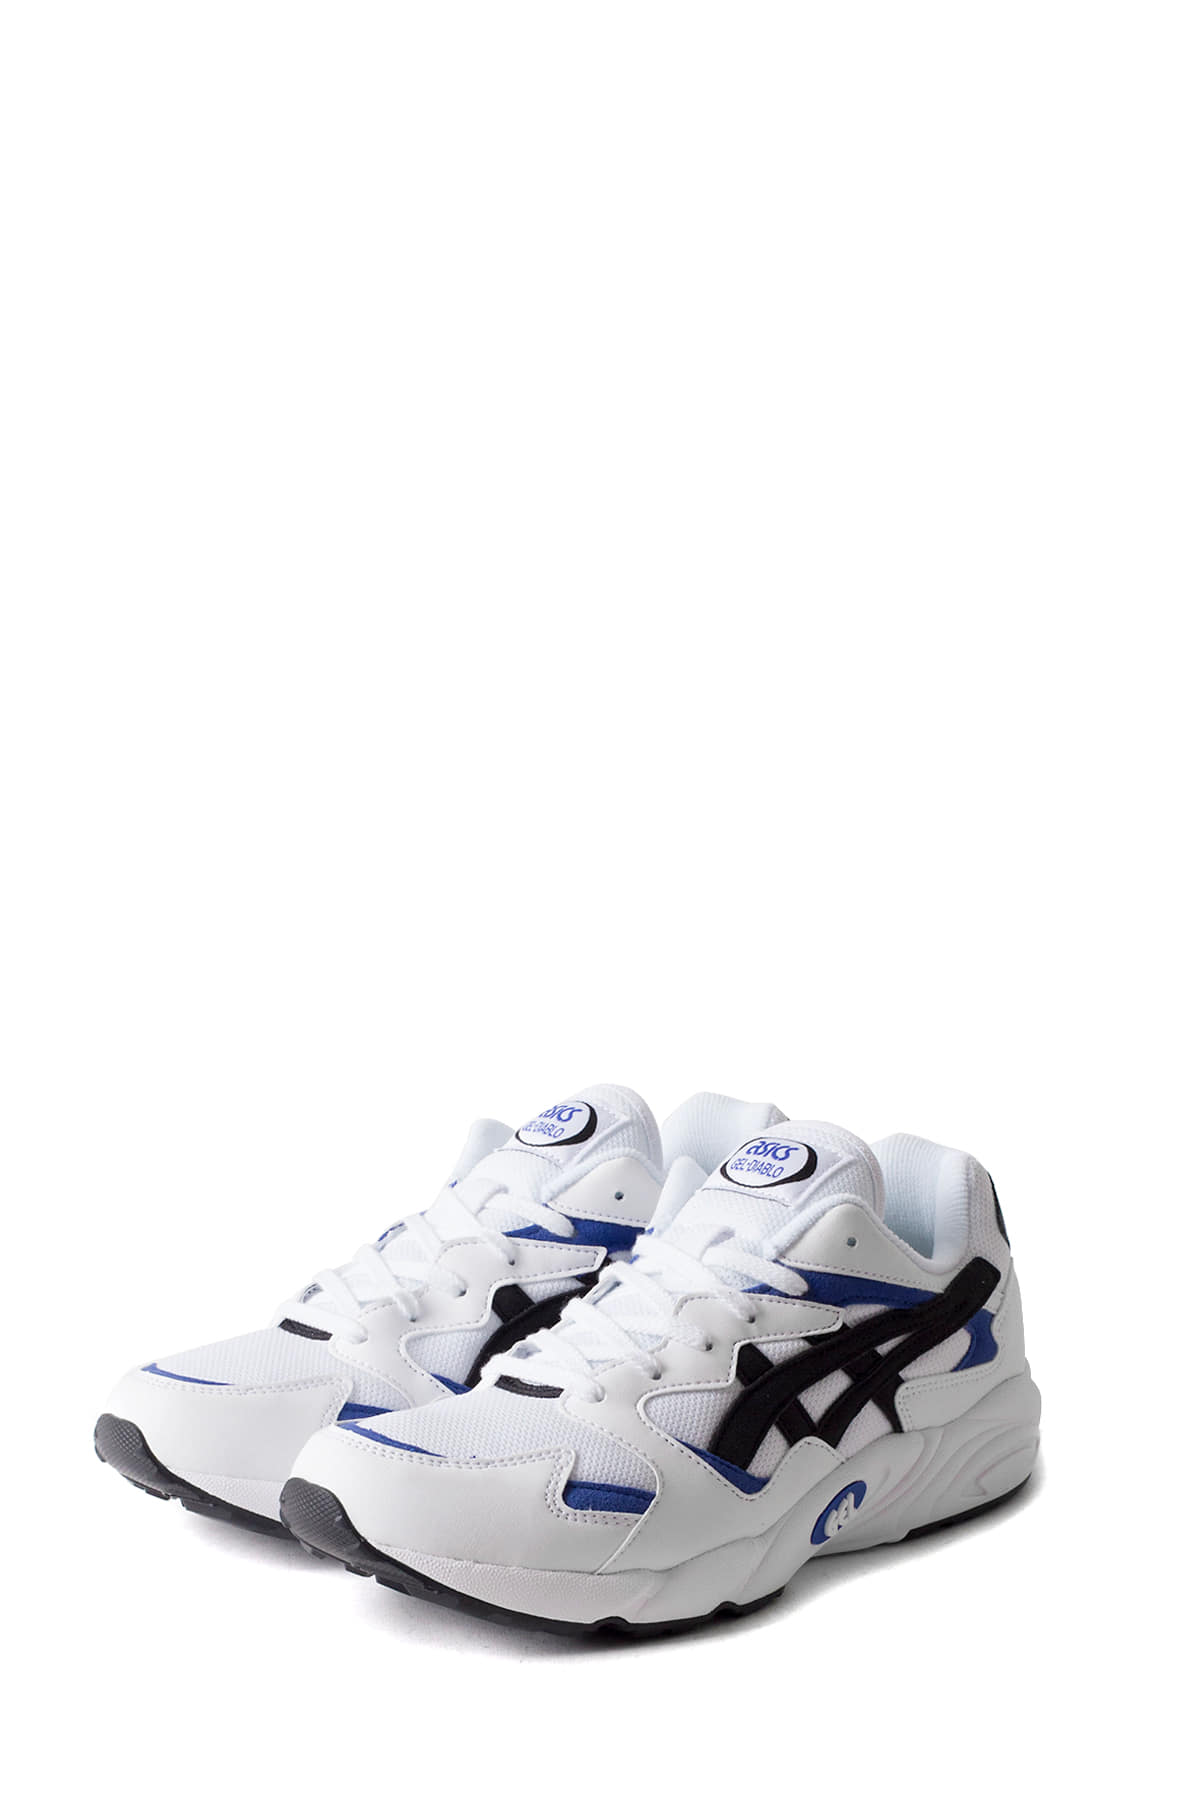 asics tiger : GEL-DIABLO (White / Blue)